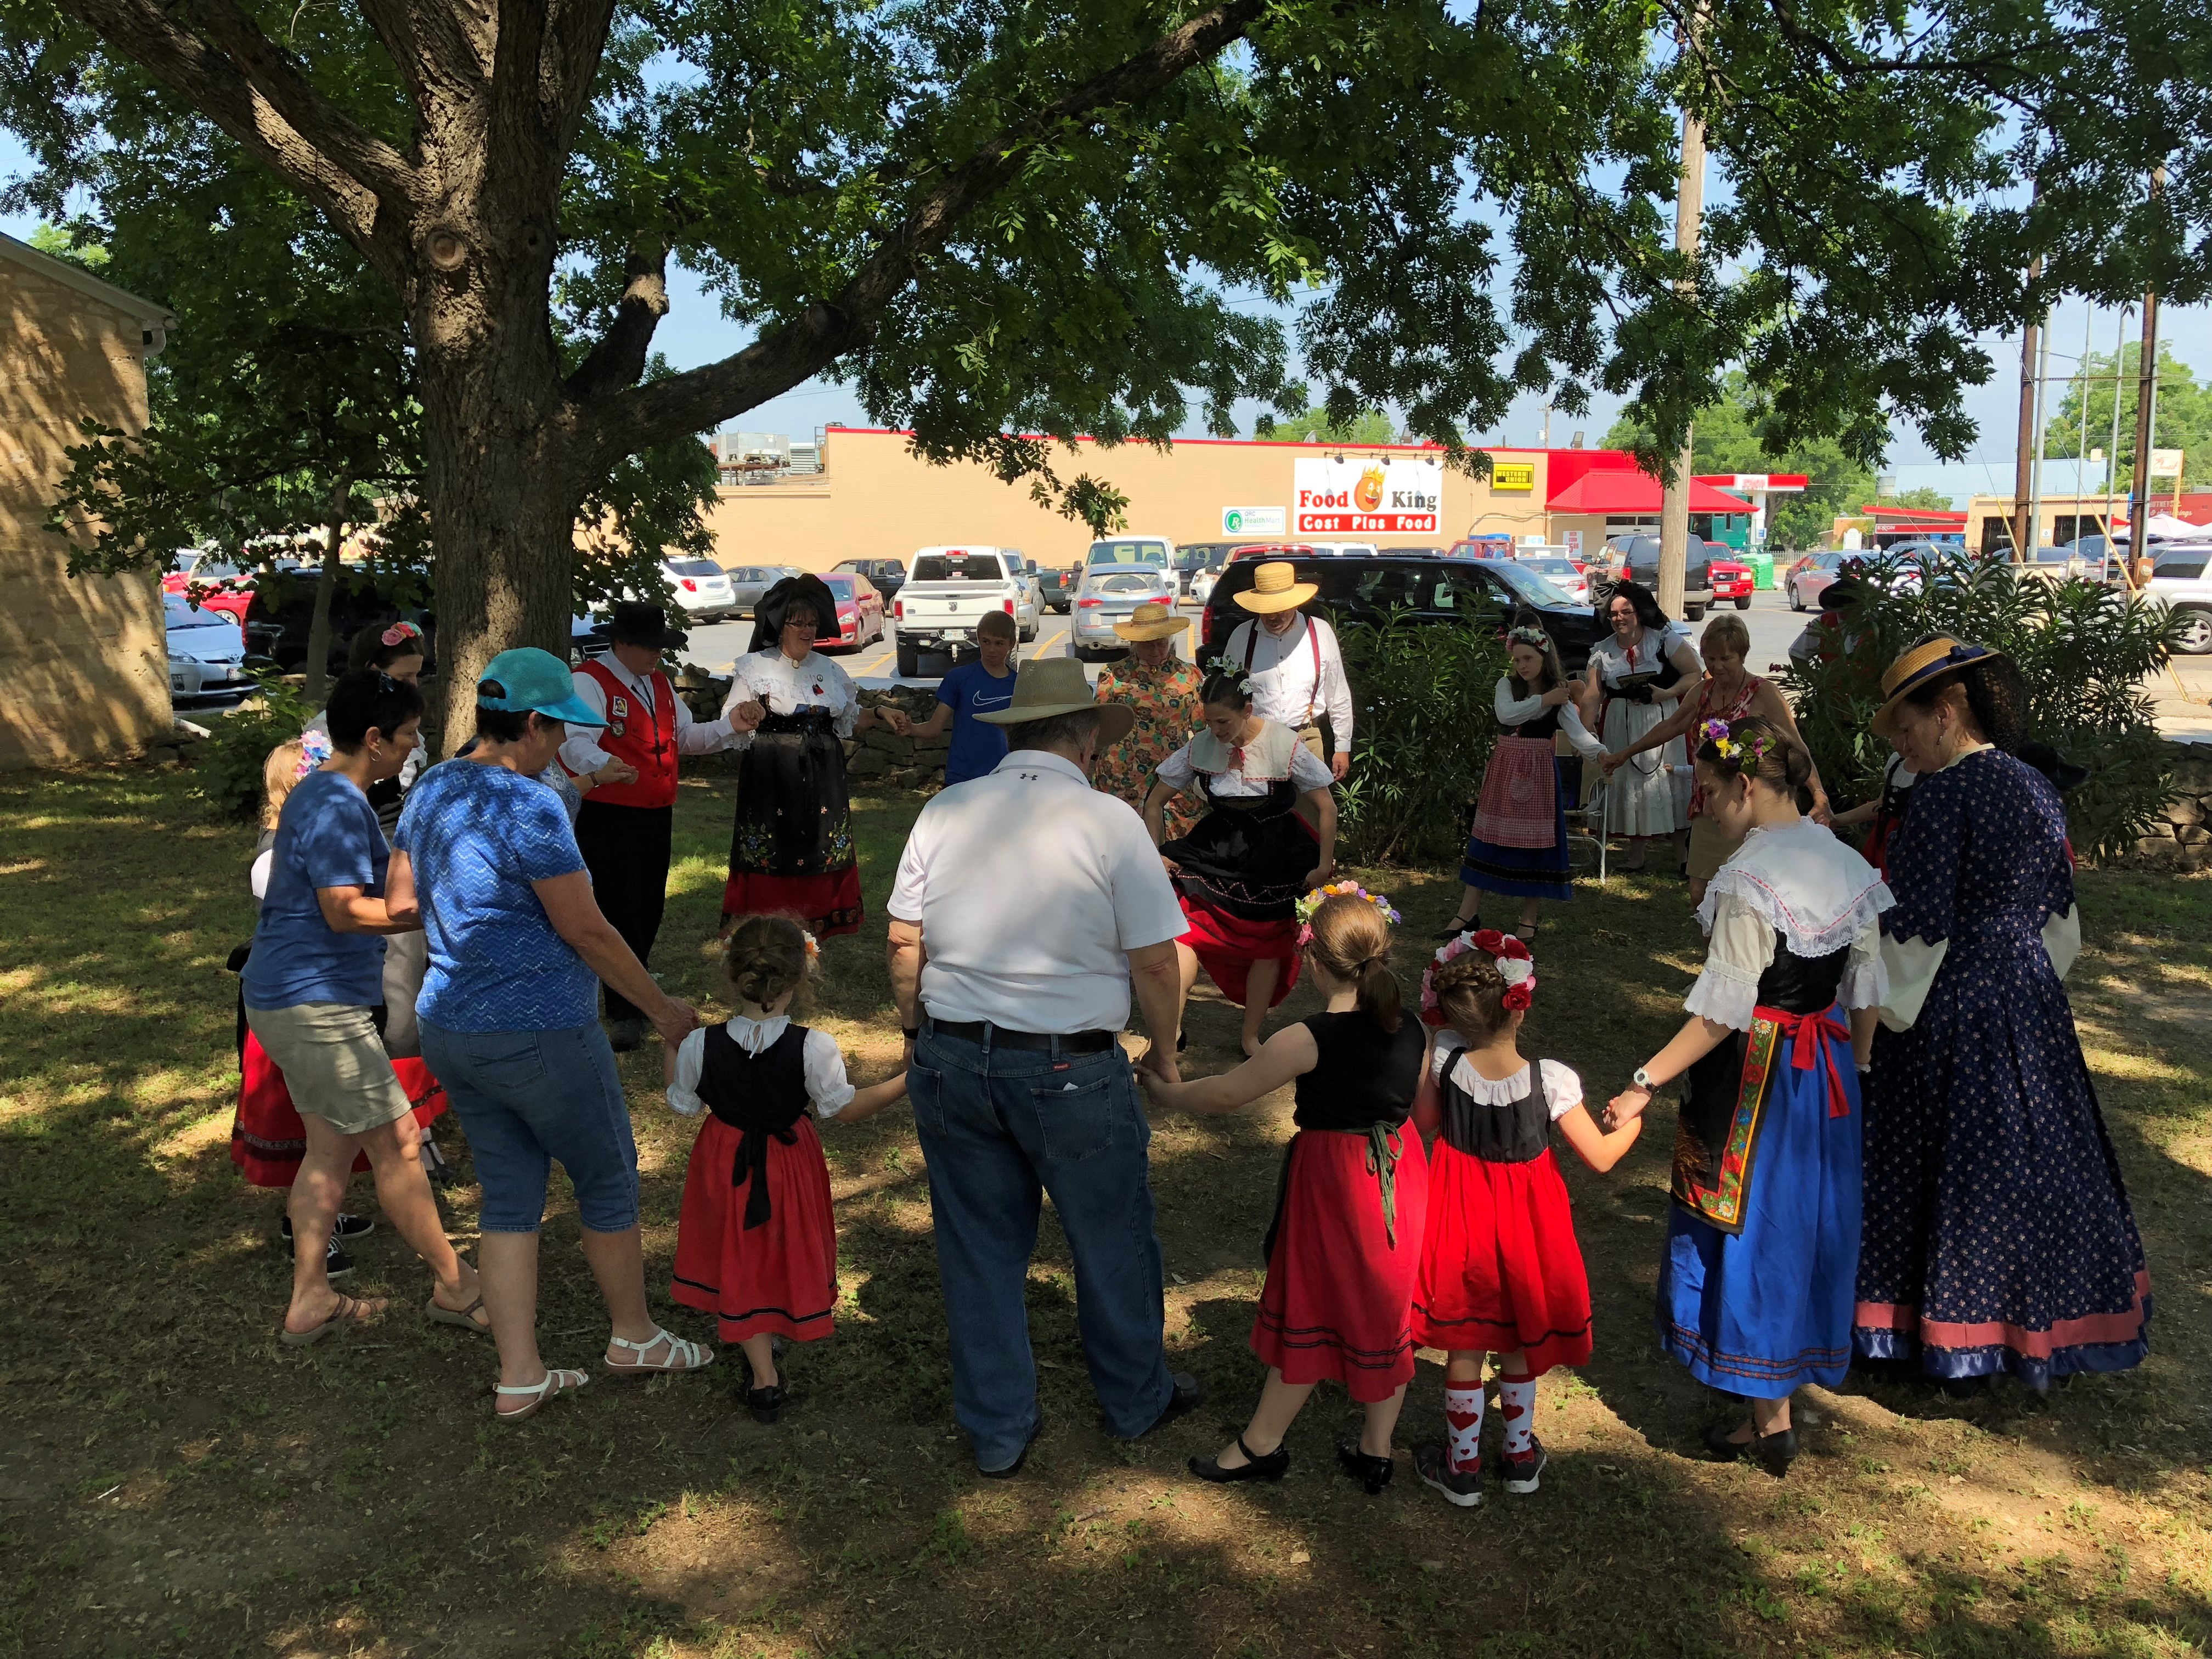 People learning Alsatian dancing in the shade of the grove at Landmark Inn State Historic Site